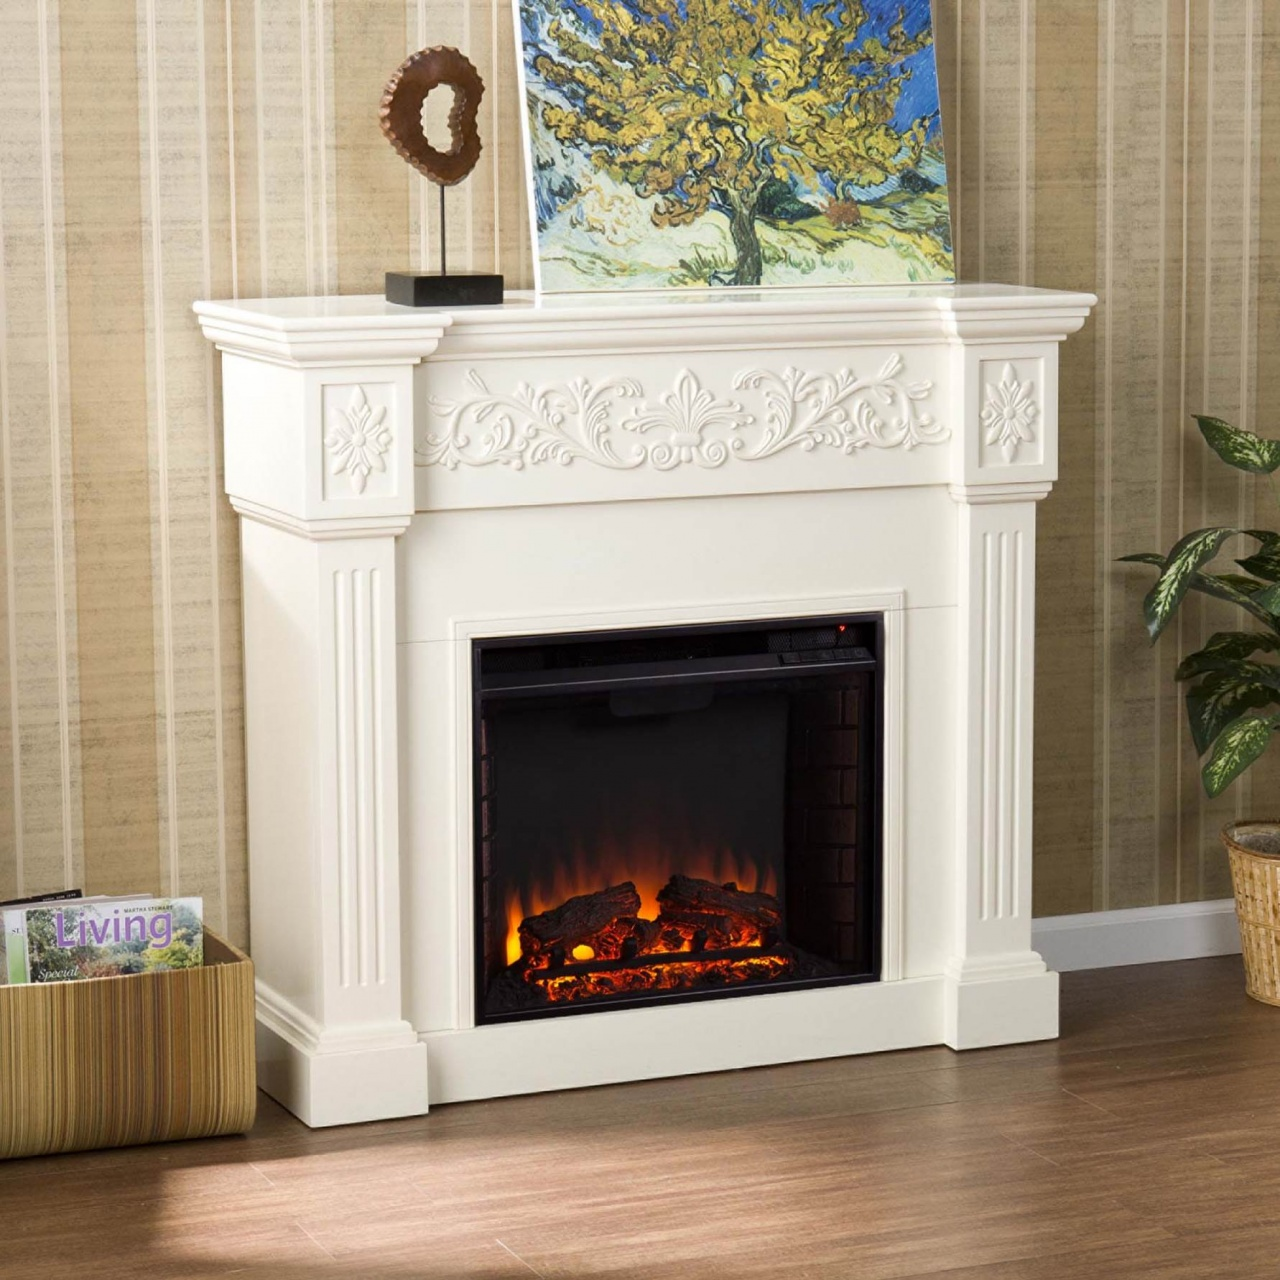 big lots fireplace entertainment center kostlich home depot fireplace tv stand lowes white gas big from big lots fireplace entertainment center